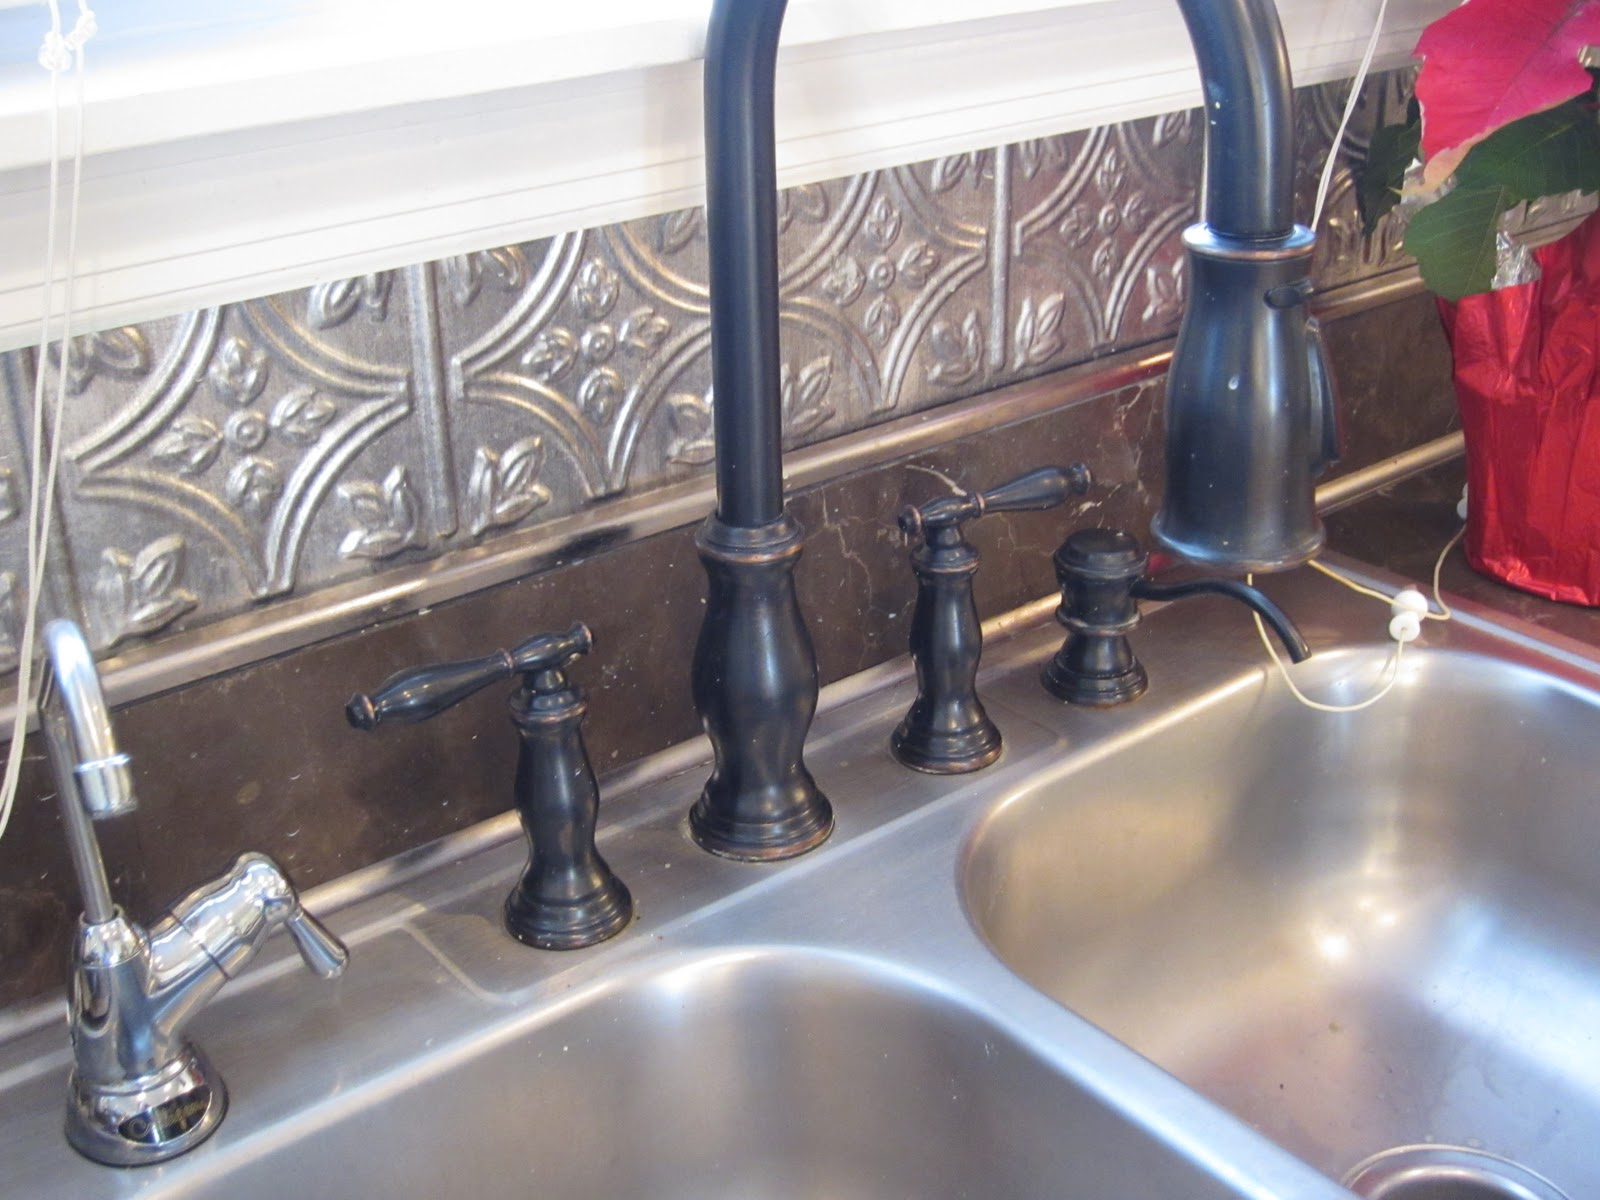 Stainless Sink with Bronze Faucet